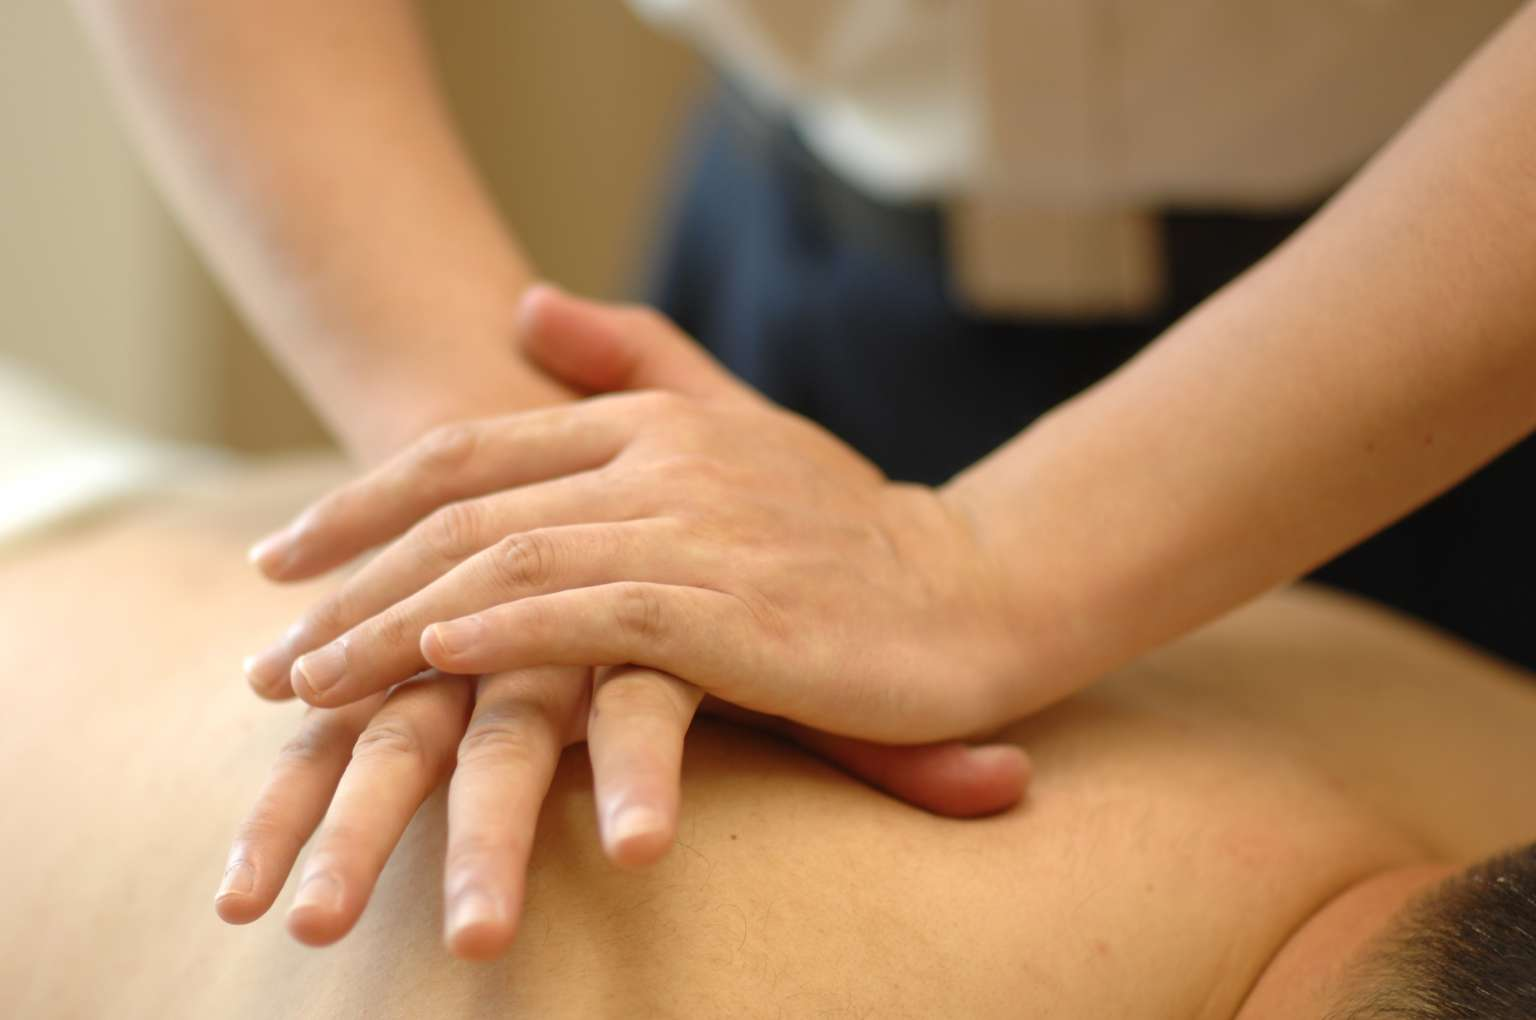 TCM massage treatments For Dealing With Pain